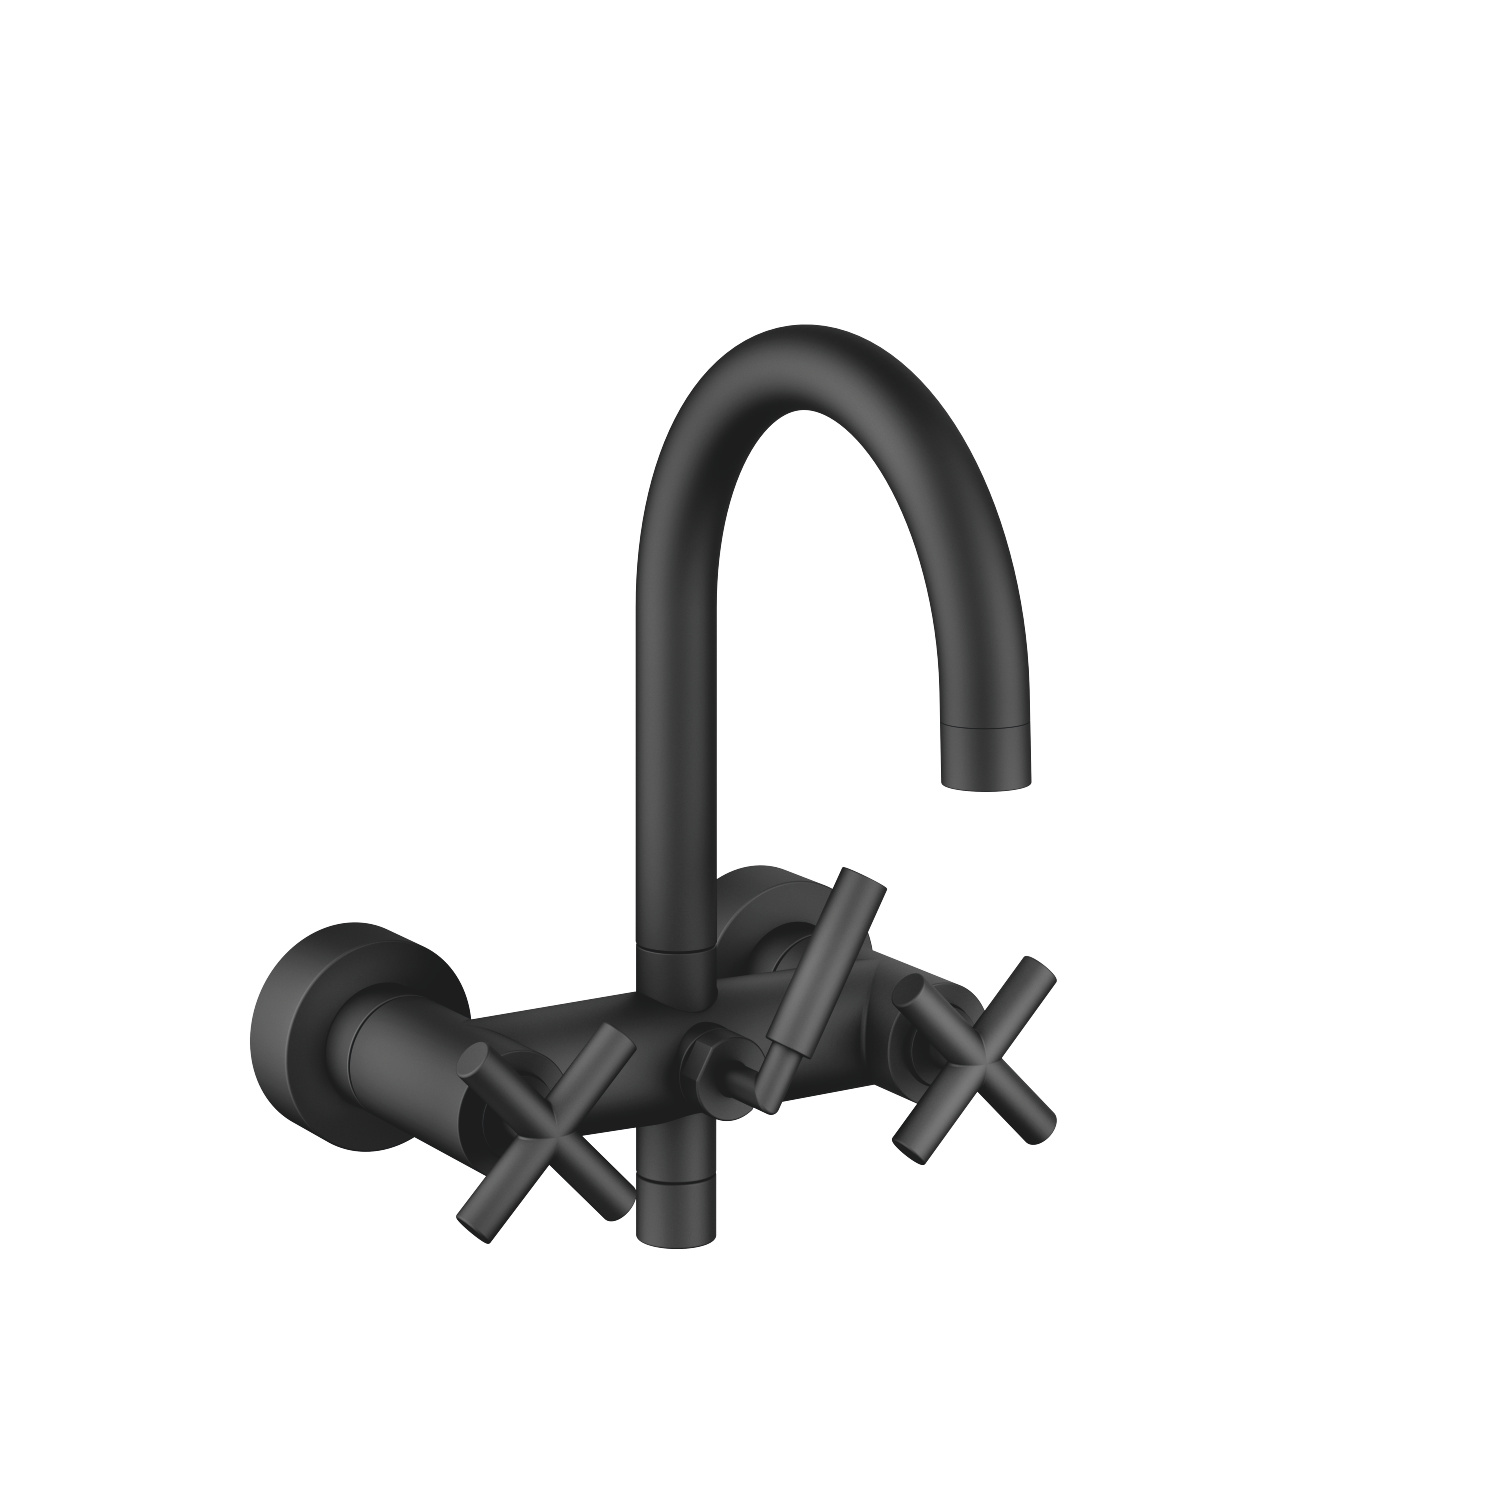 Bath mixer for wall mounting - matt black